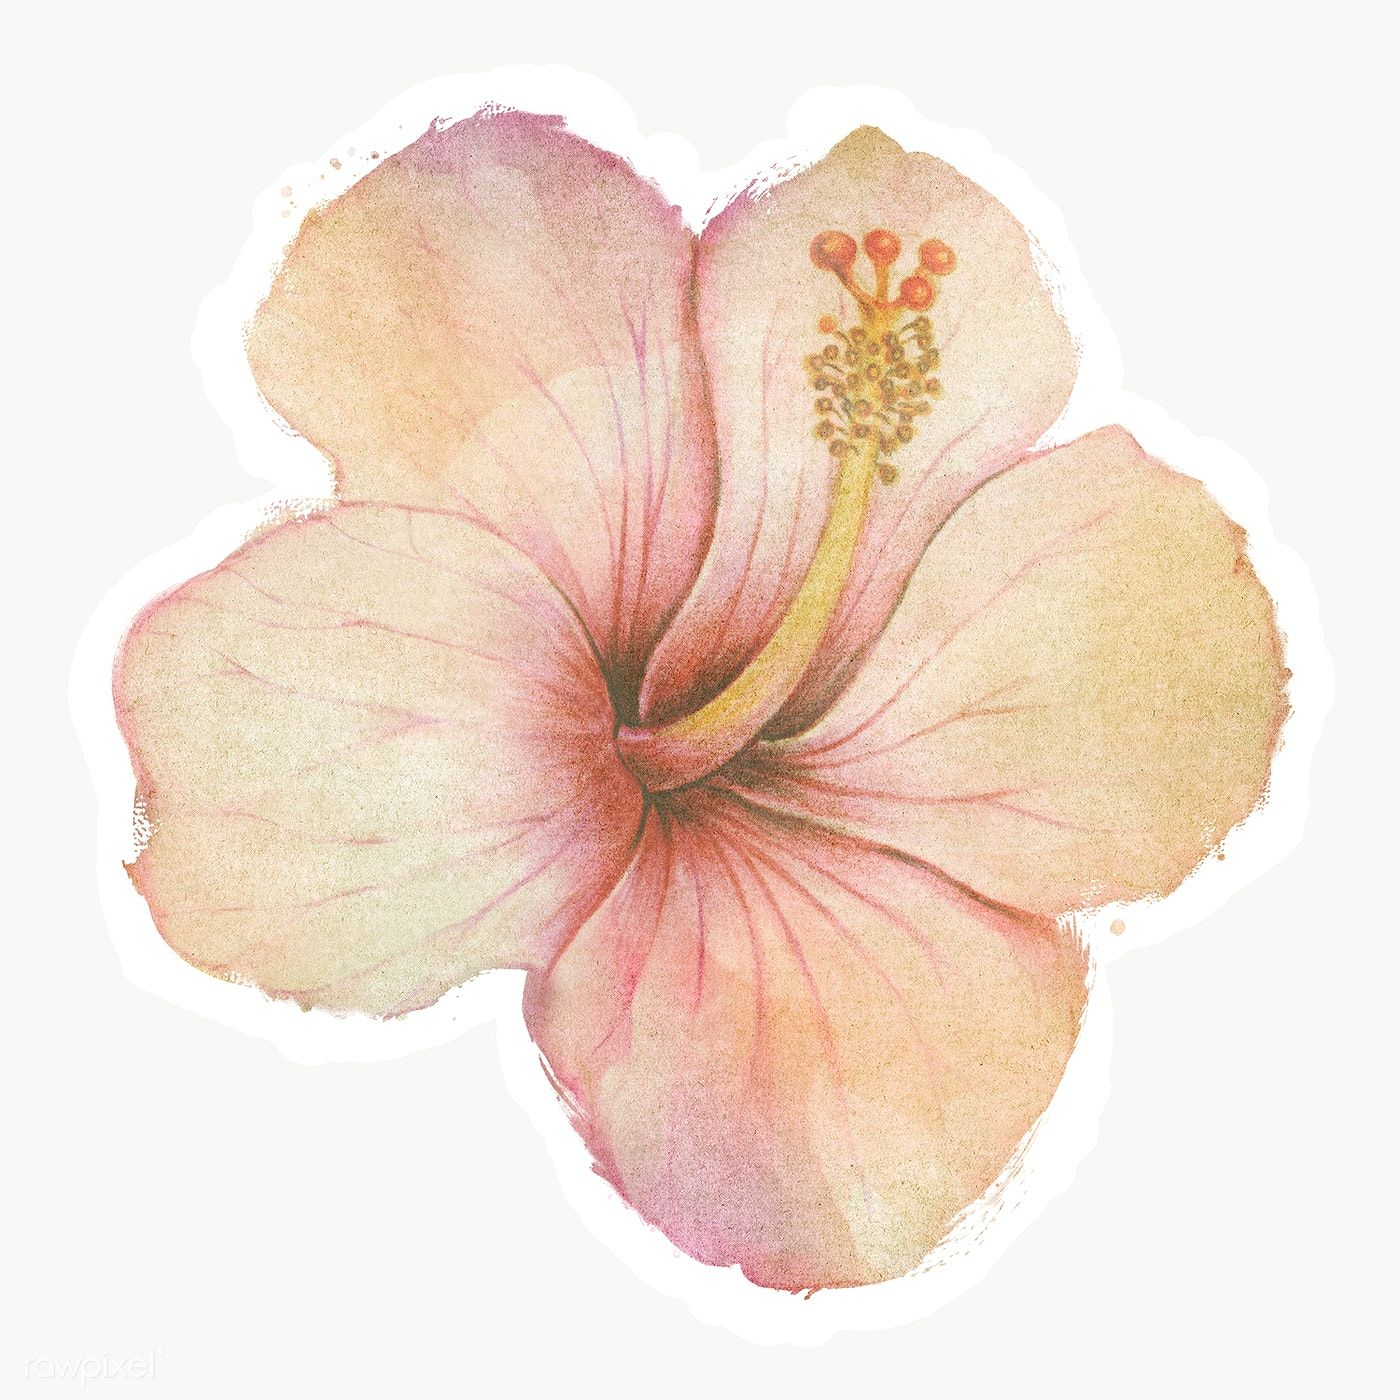 Hand Drawn Beige Hibiscus Flower Watercolor Style Sticker With White Border Free Image By Ra In 2020 Watercolor Flowers Watercolor Flower Background Hibiscus Flowers